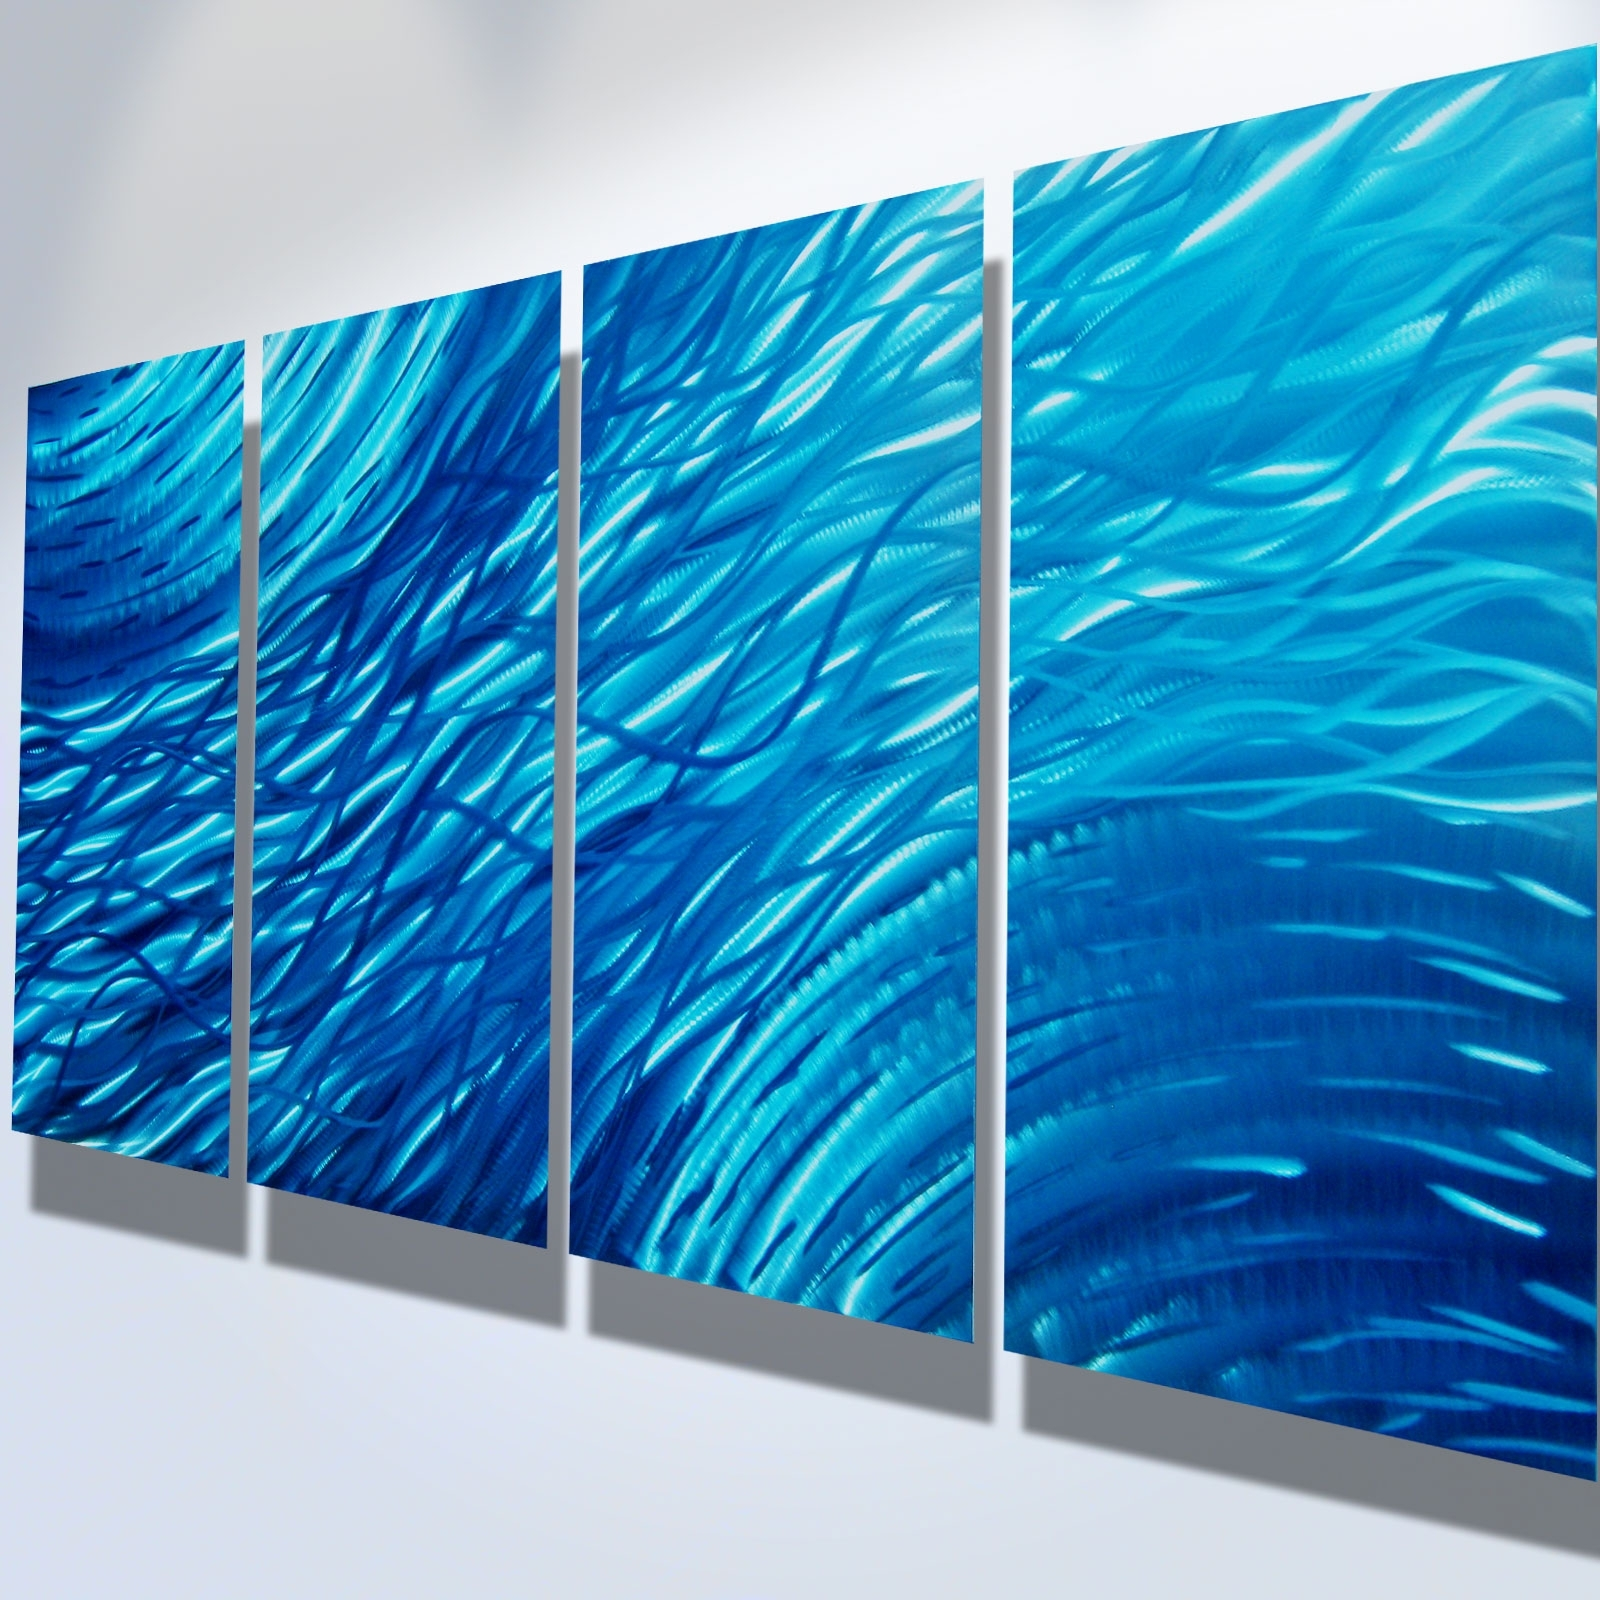 Ocean Metal Wall Art Abstract Contemporary Modern Decor With Regard To Best And Newest Abstract Ocean Wall Art (View 2 of 20)